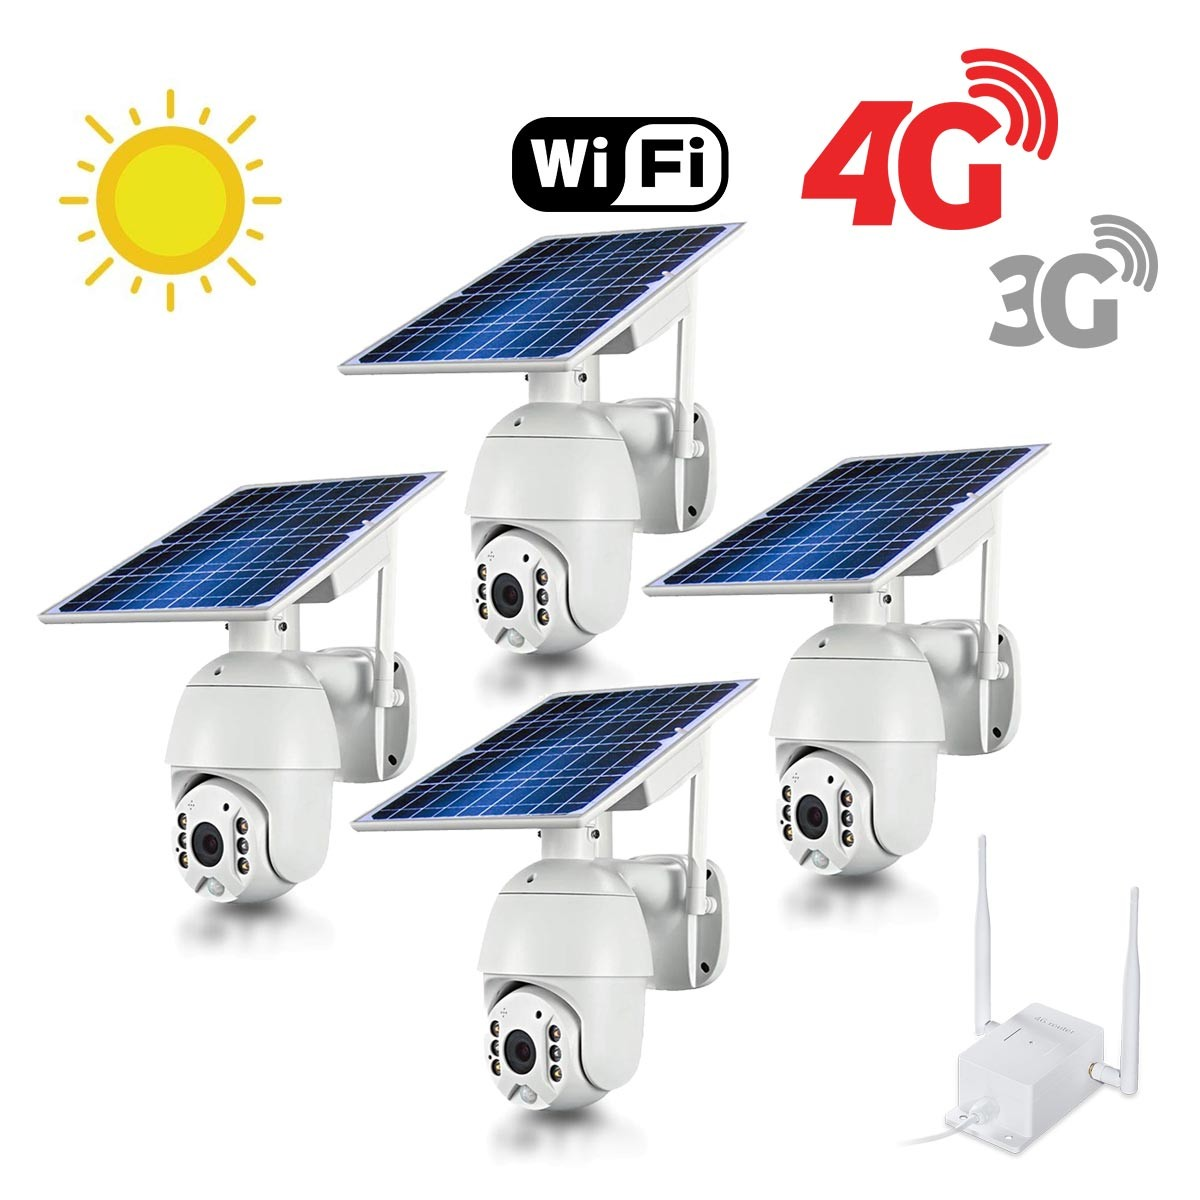 Kit 4 caméras pilotables solaires Wifi HD 1080P waterproof Infrarouges accès à distance via iPhone Android 64 Go inclus avec routeur GSM 3G 4G WiFi